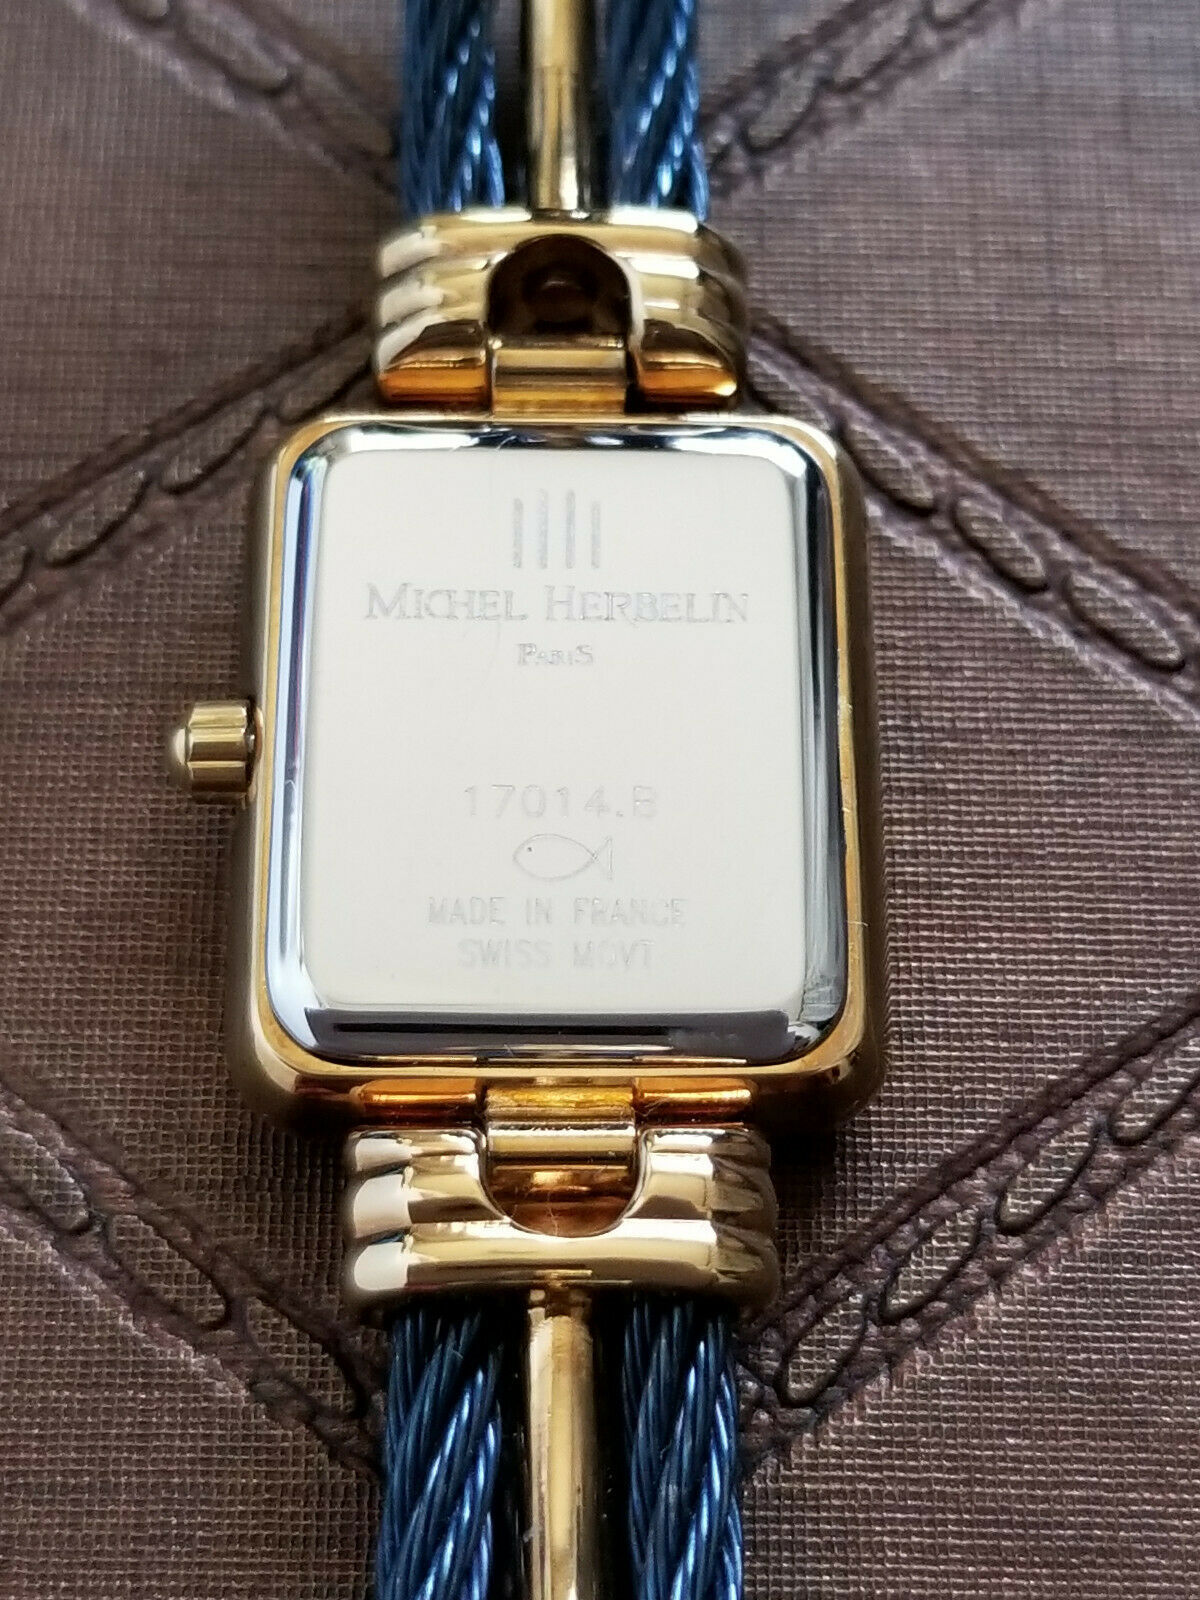 Michel Herbelin vintage watch SWISS MOVEMENT QUARTZ Made in France